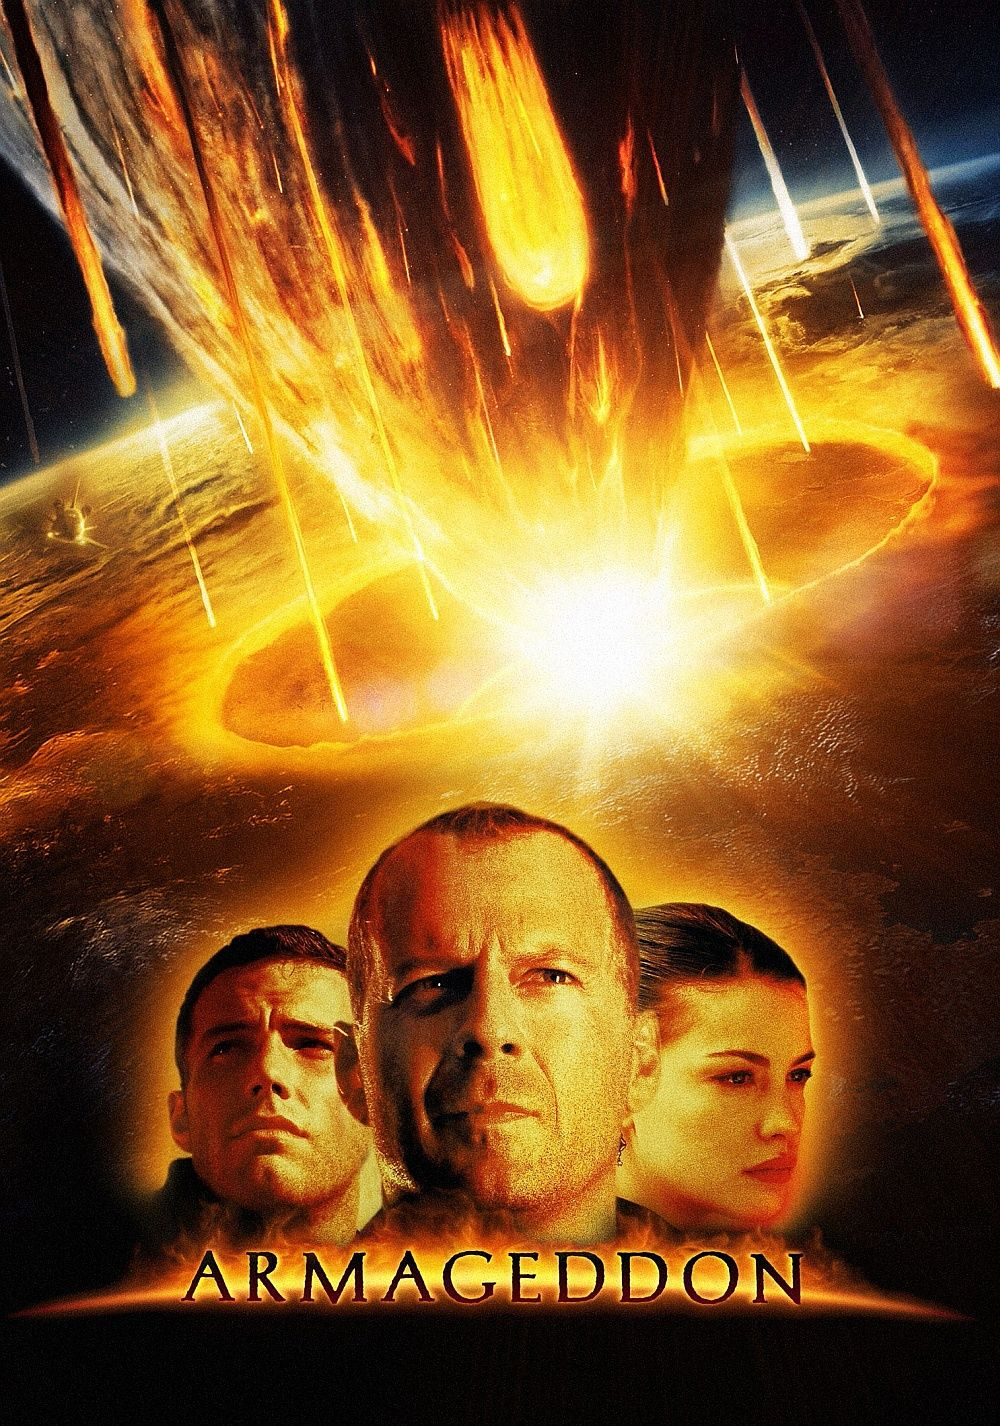 Armageddon 1998 The Earth S Darkest Day Will Be Man S Finest Hour Peliculas Armagedon Poster